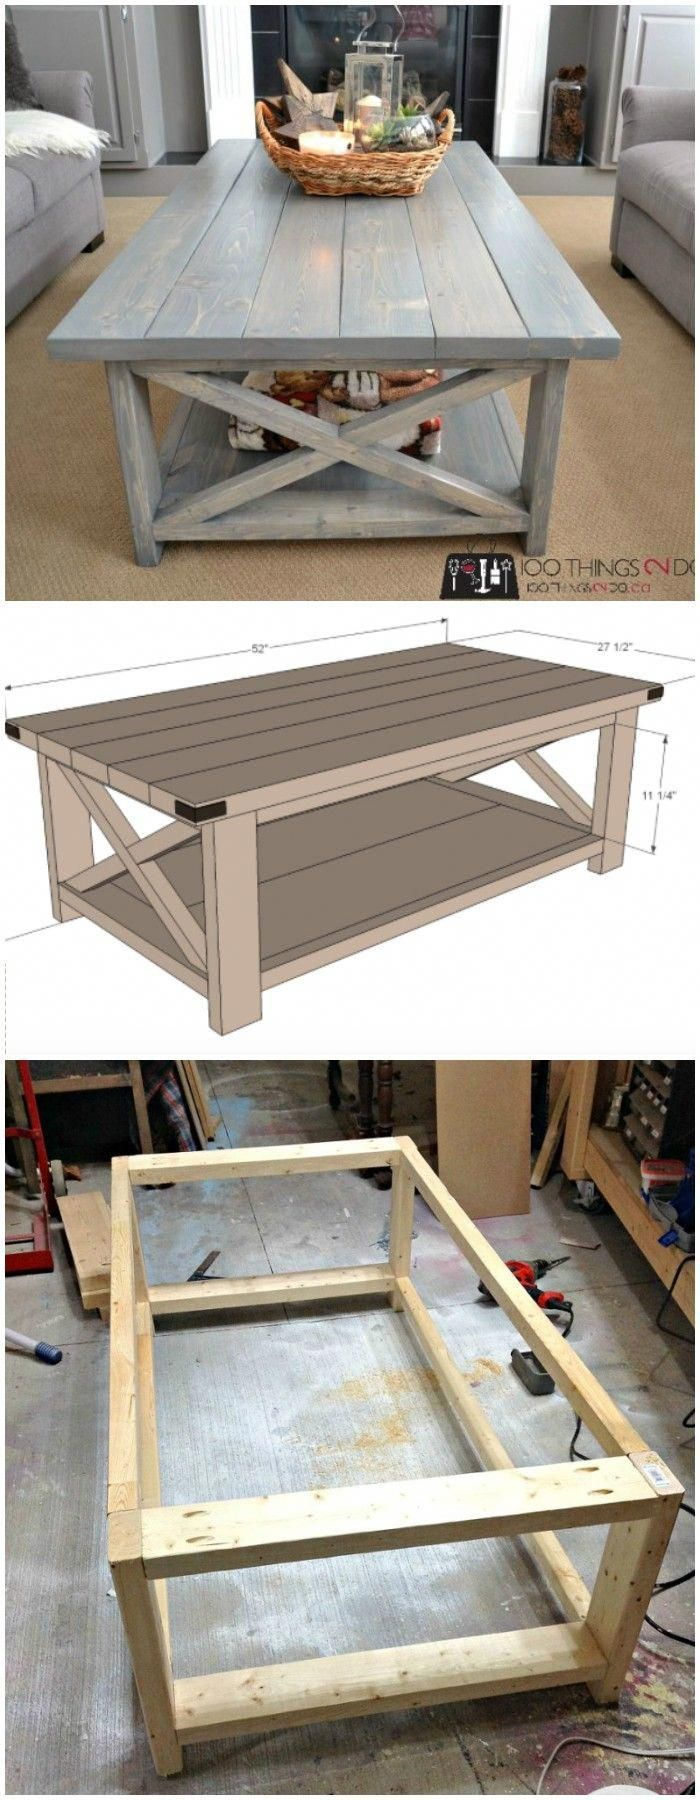 Photo of DIY rustic X coffee table #House furniture #Coffee table #DIY #rustic #woodworking …